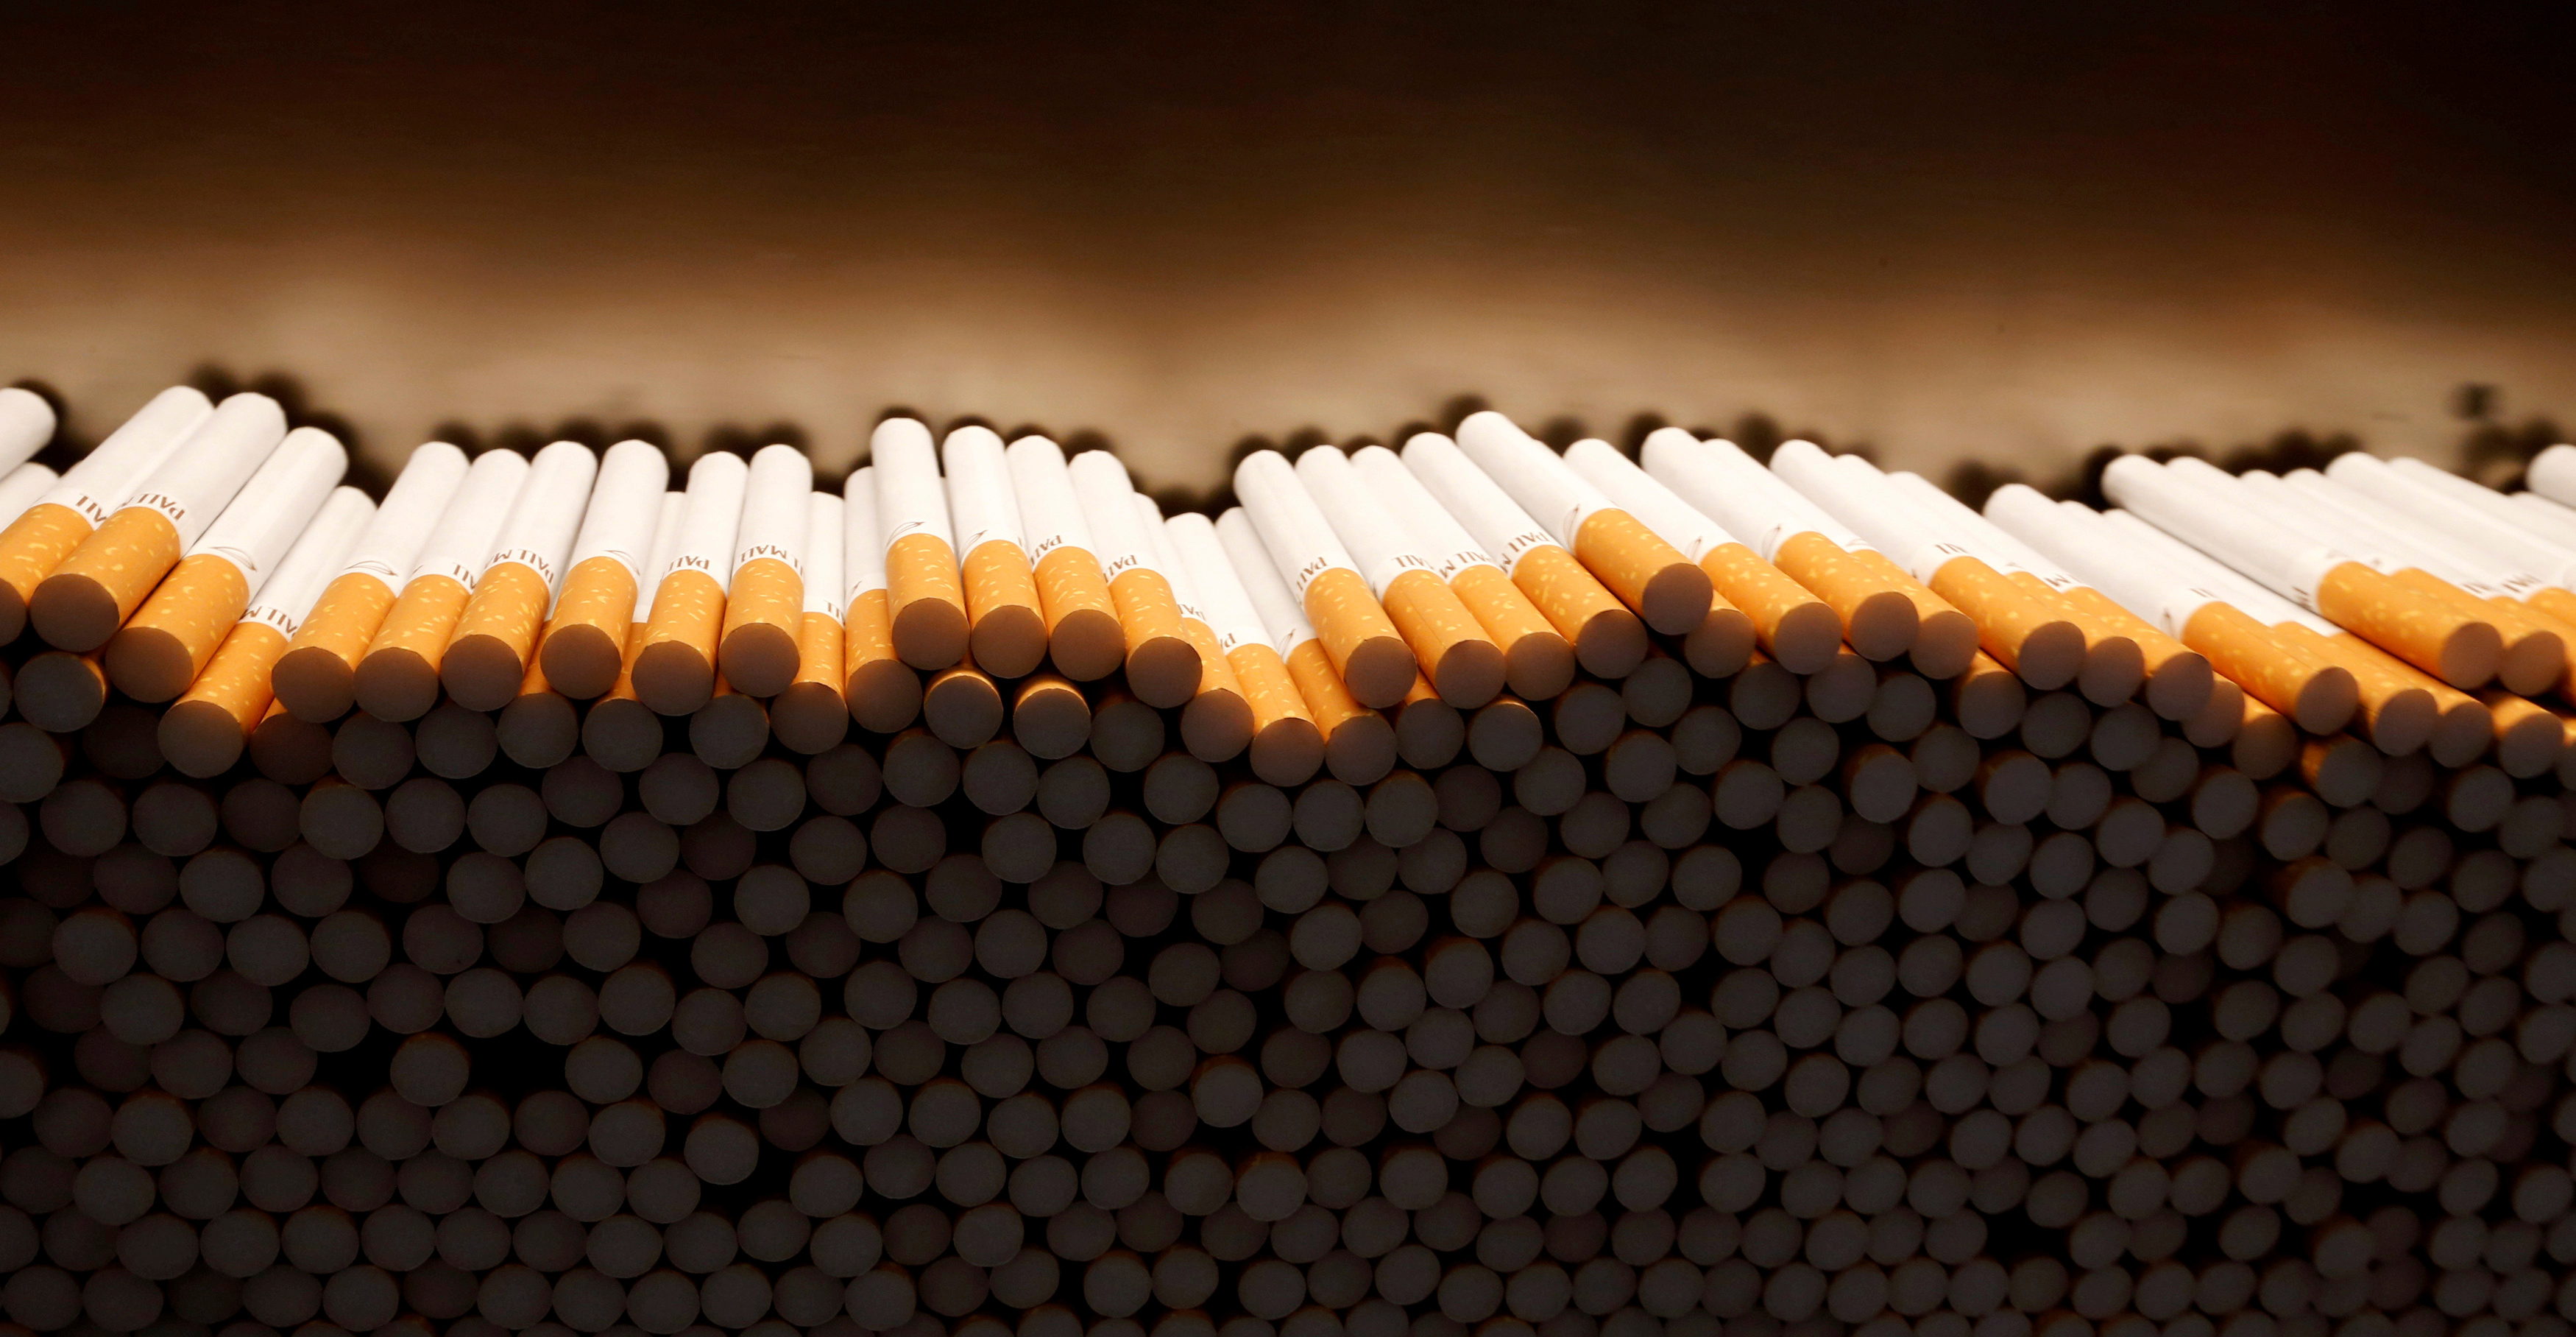 The tobacco industry had been looking for a novel way to deliver nicotine for years. (Michaela Rehle/Reuters)